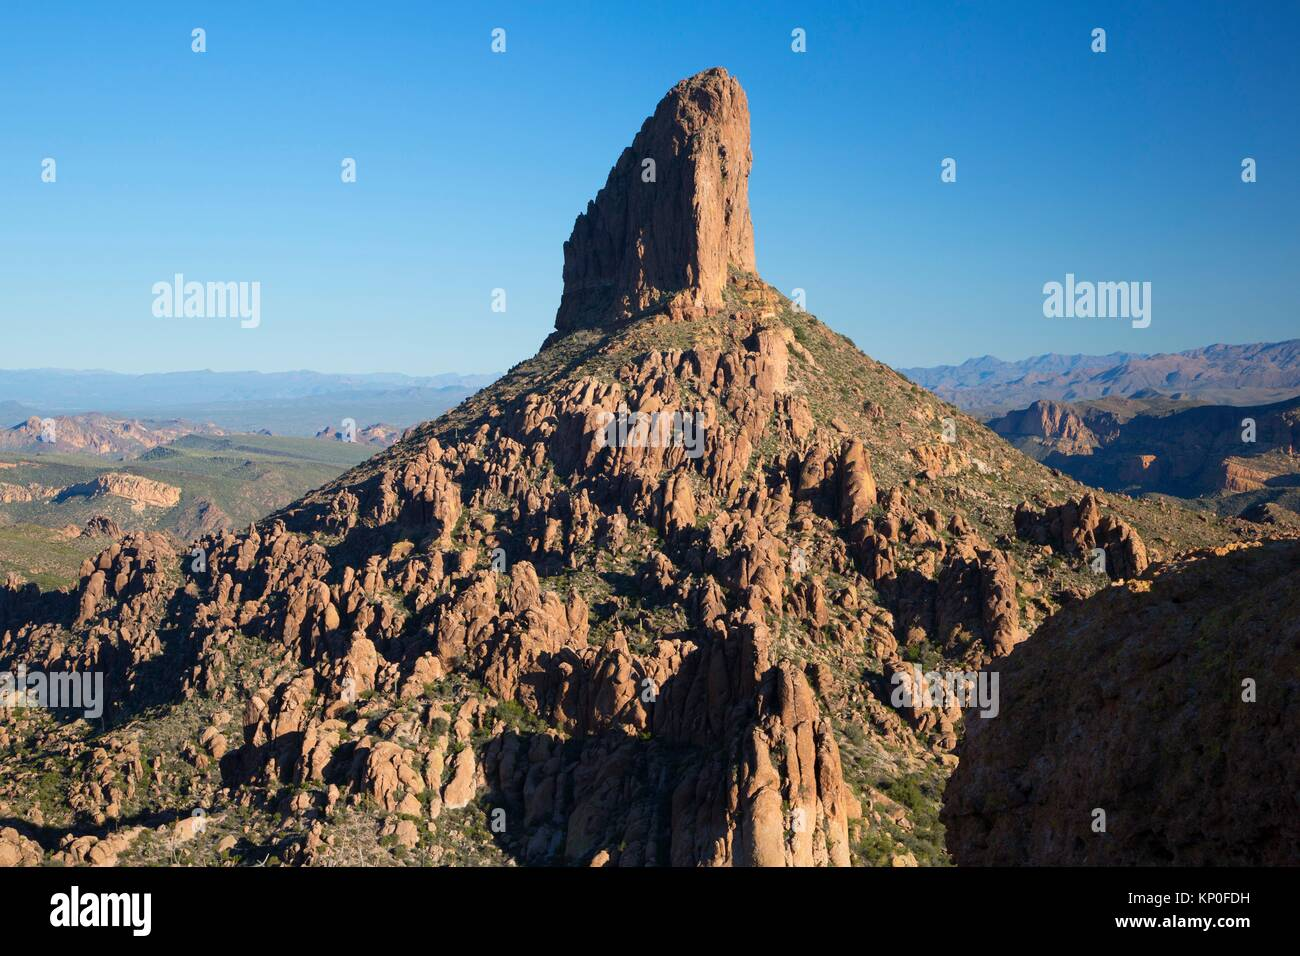 Weavers Needle from Peralta Trail, Superstition Wilderness, Tonto National Forest, Arizona. - Stock Image